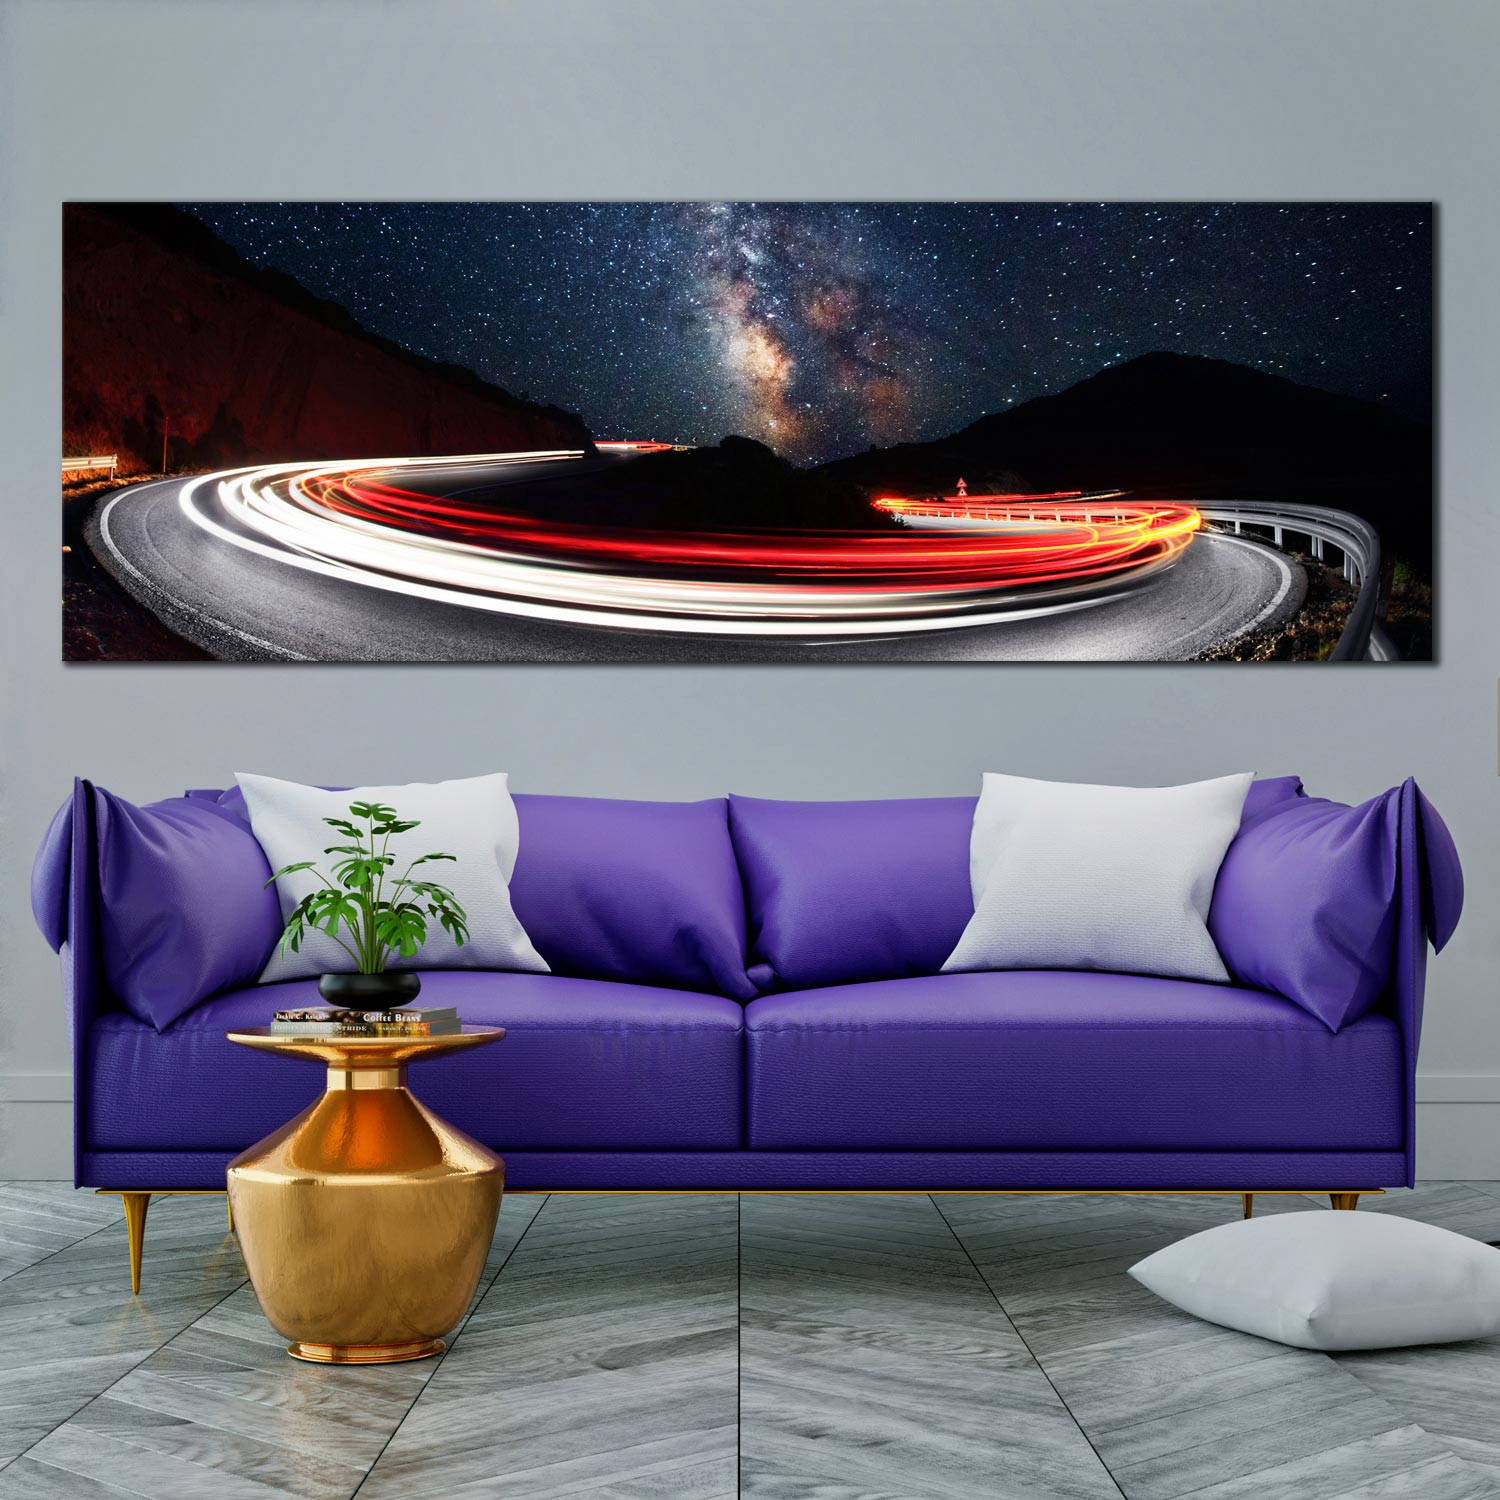 Milky way canvas wall art cars red bright light trails panoramic canvas print dark blue night sky mountains 1 piece canvas set